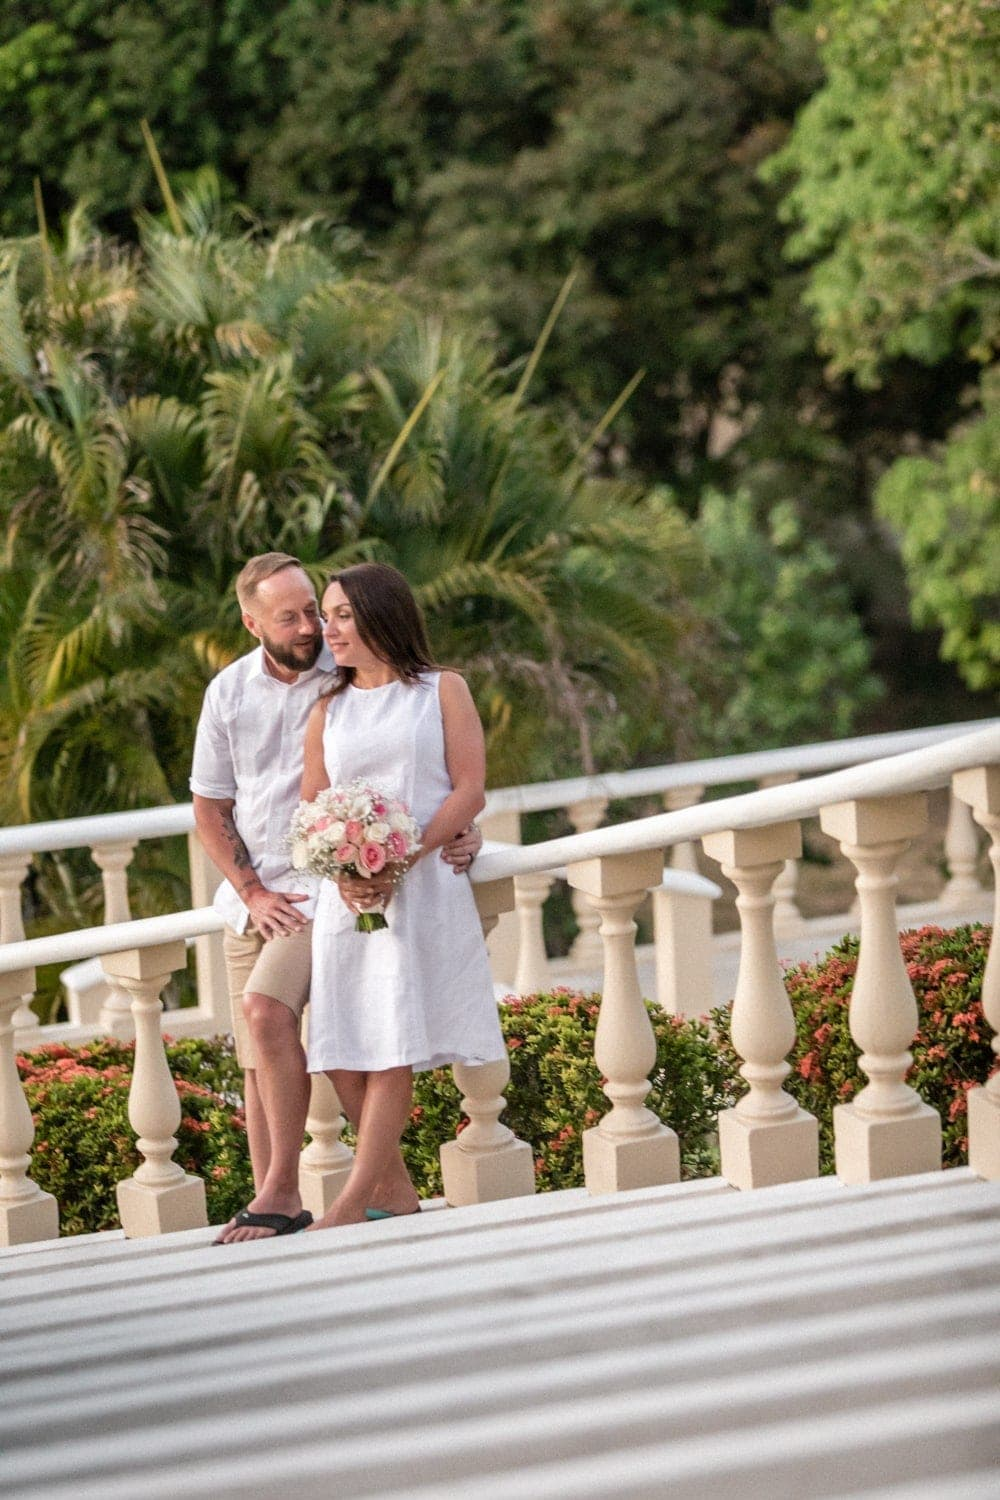 Just married couple poses for photo on staircase at sunset.